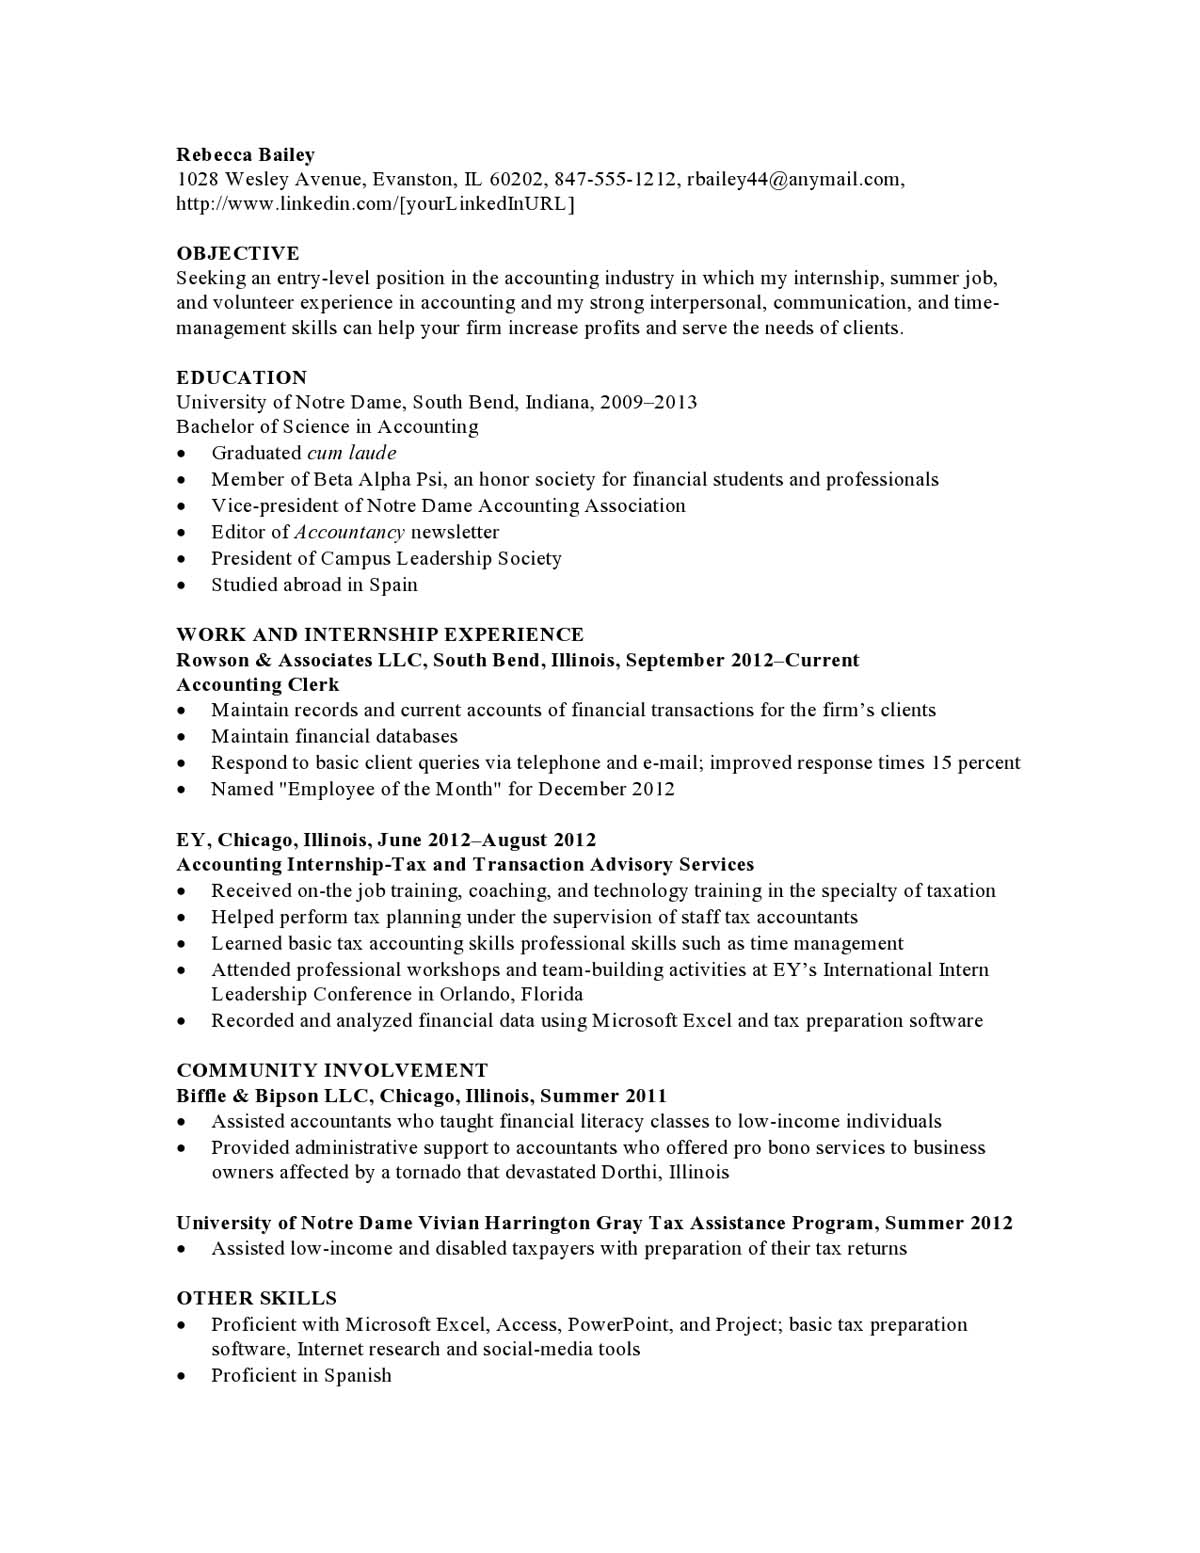 resume samples templates examples vault experience ideas for crescoact19 problem solve Resume Experience Ideas For Resume